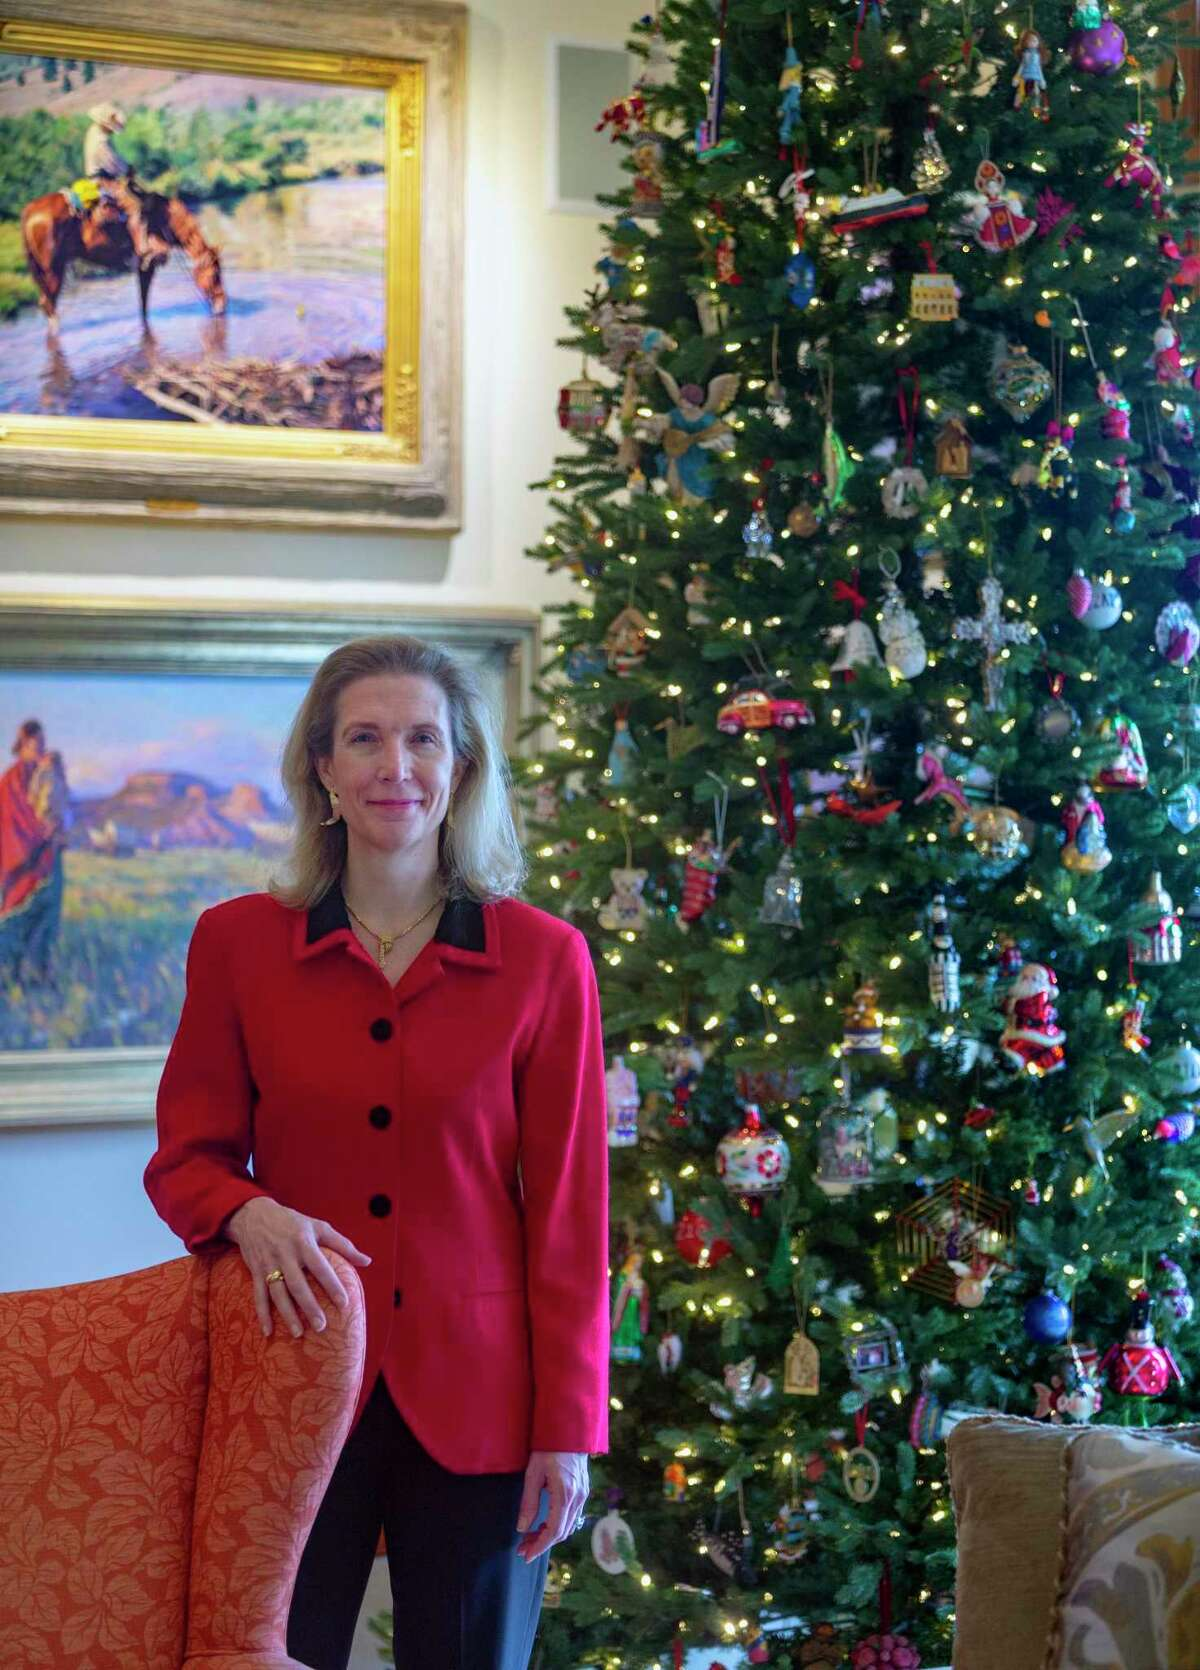 Abigail Kampmann in front of her Christmas tree. She decorated her home for Christmas early this year and inspired her friends to do the same.